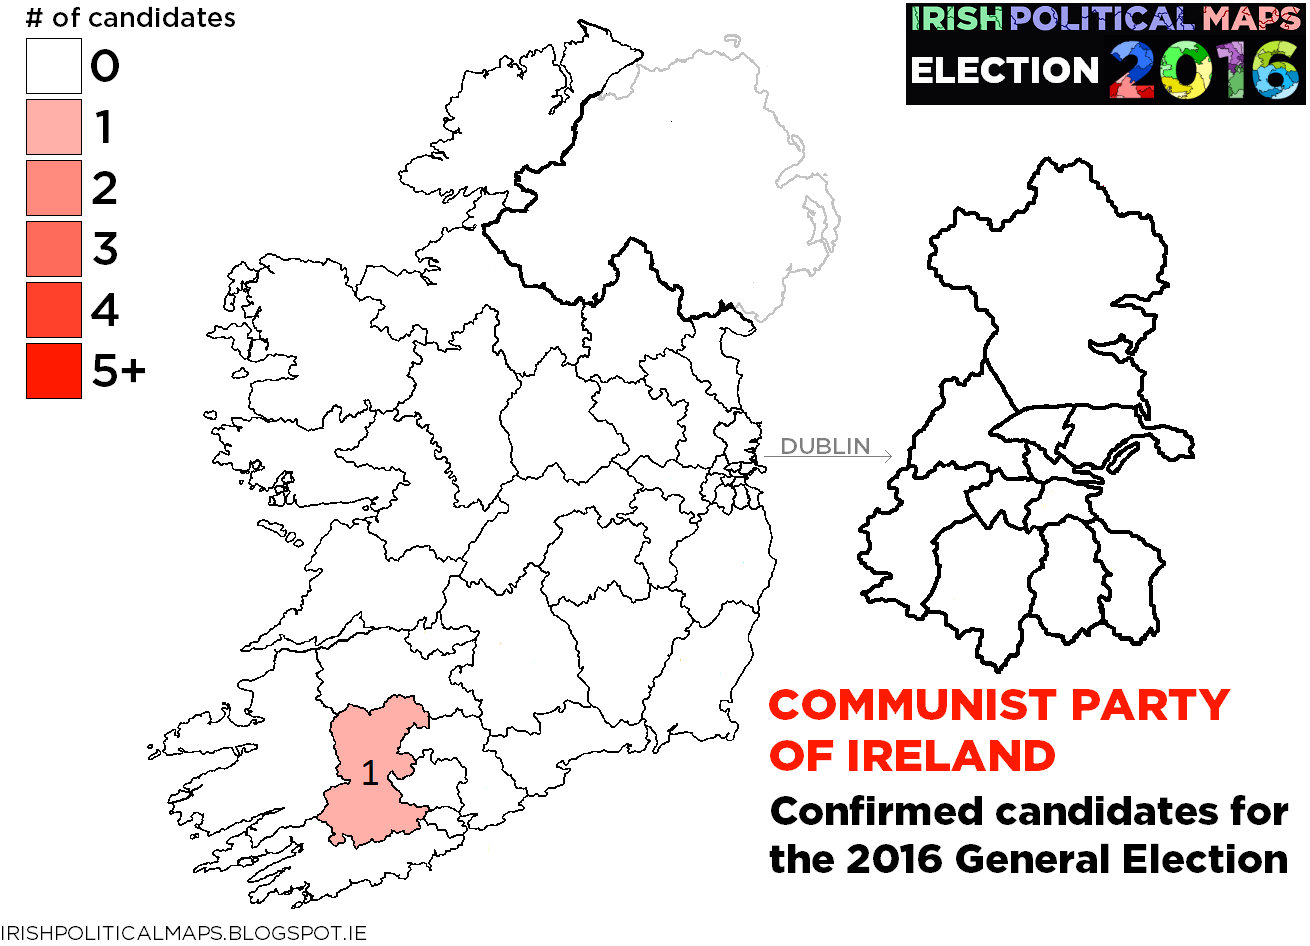 Irish Political Maps Confirmed Candidates For The General - Ireland political map